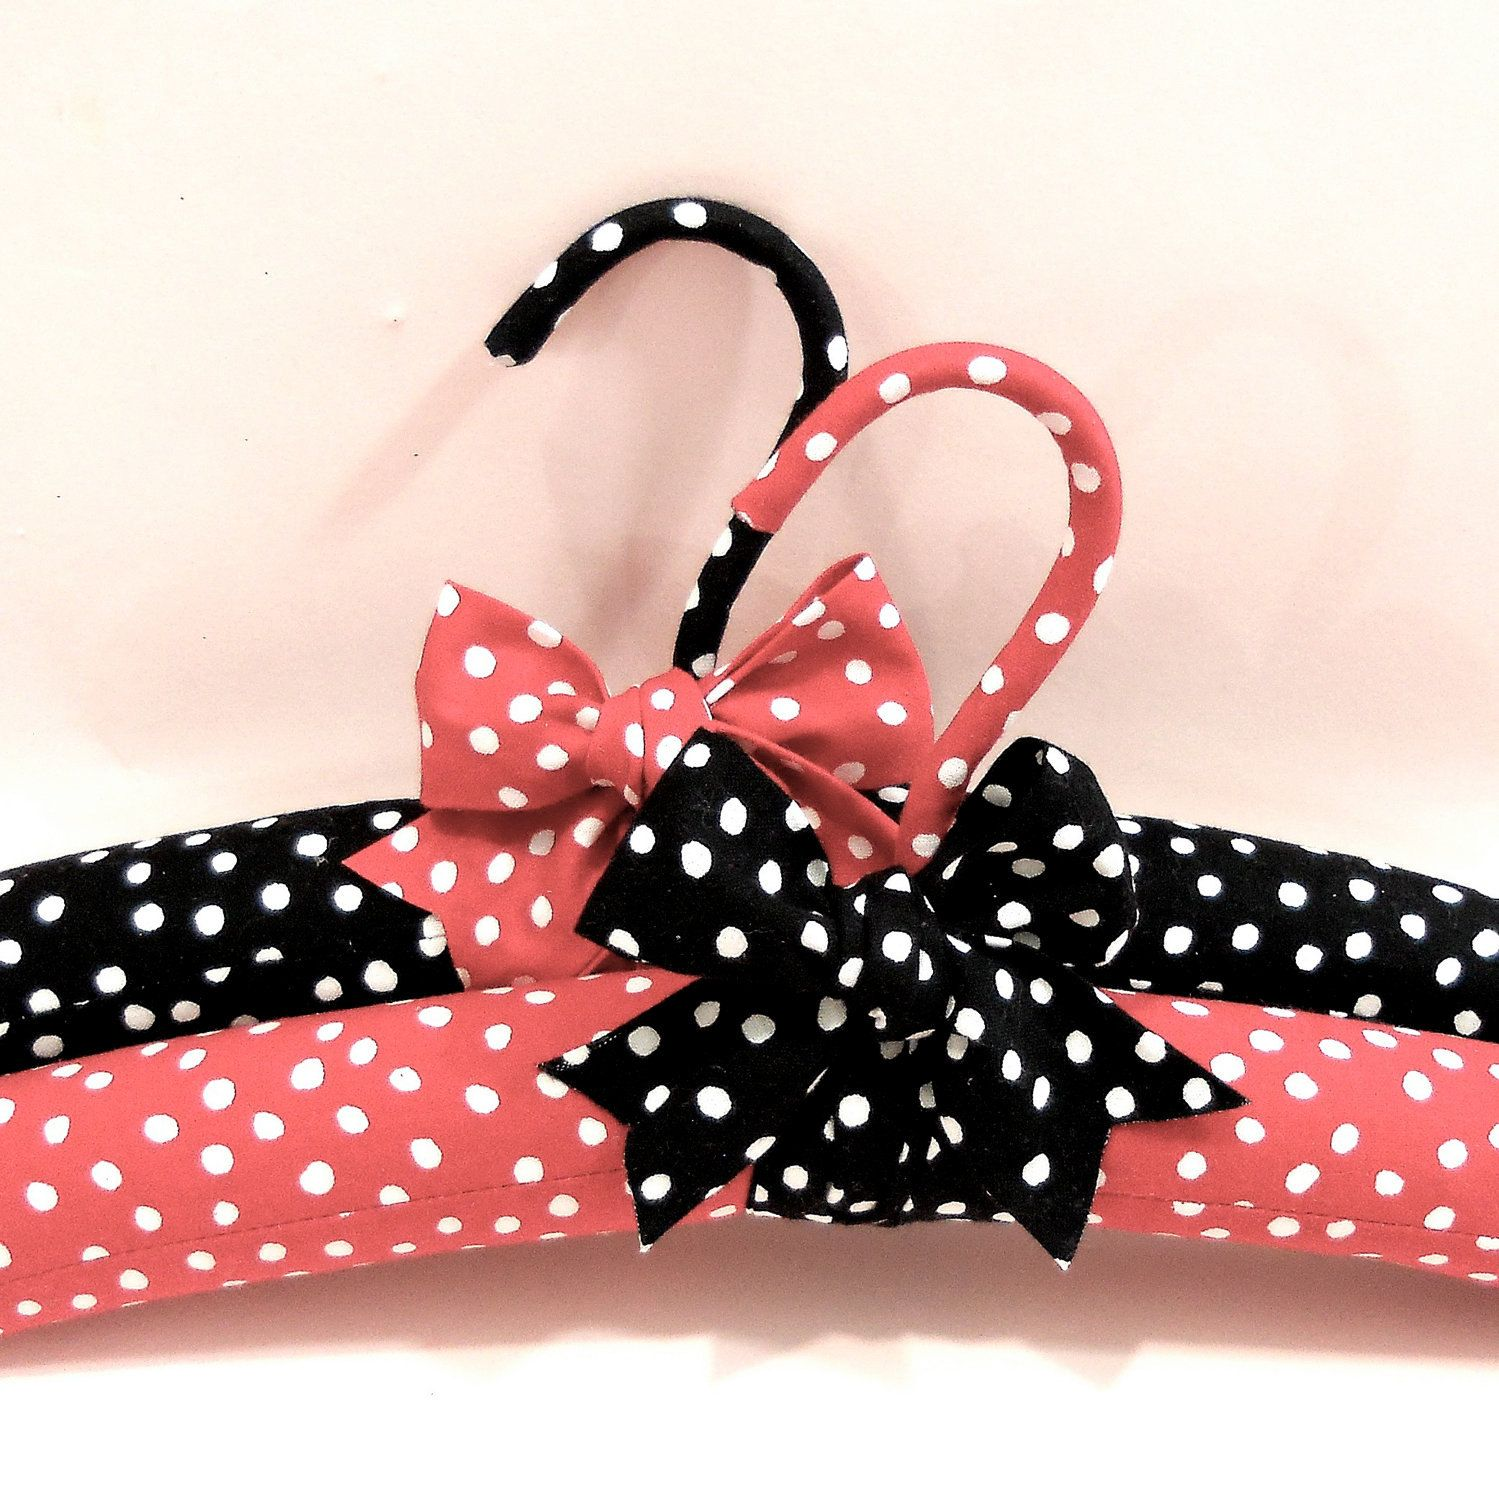 Padded hangers black red with white polka dots